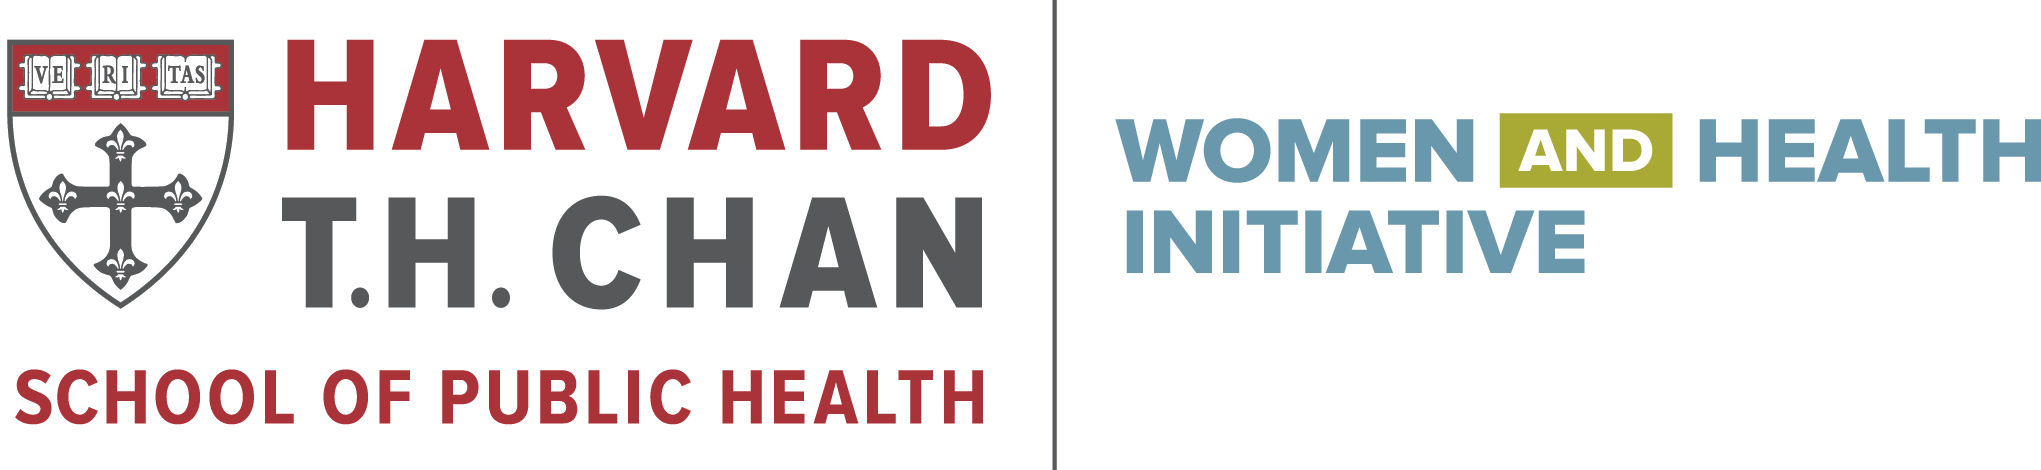 Women and Health Initiative